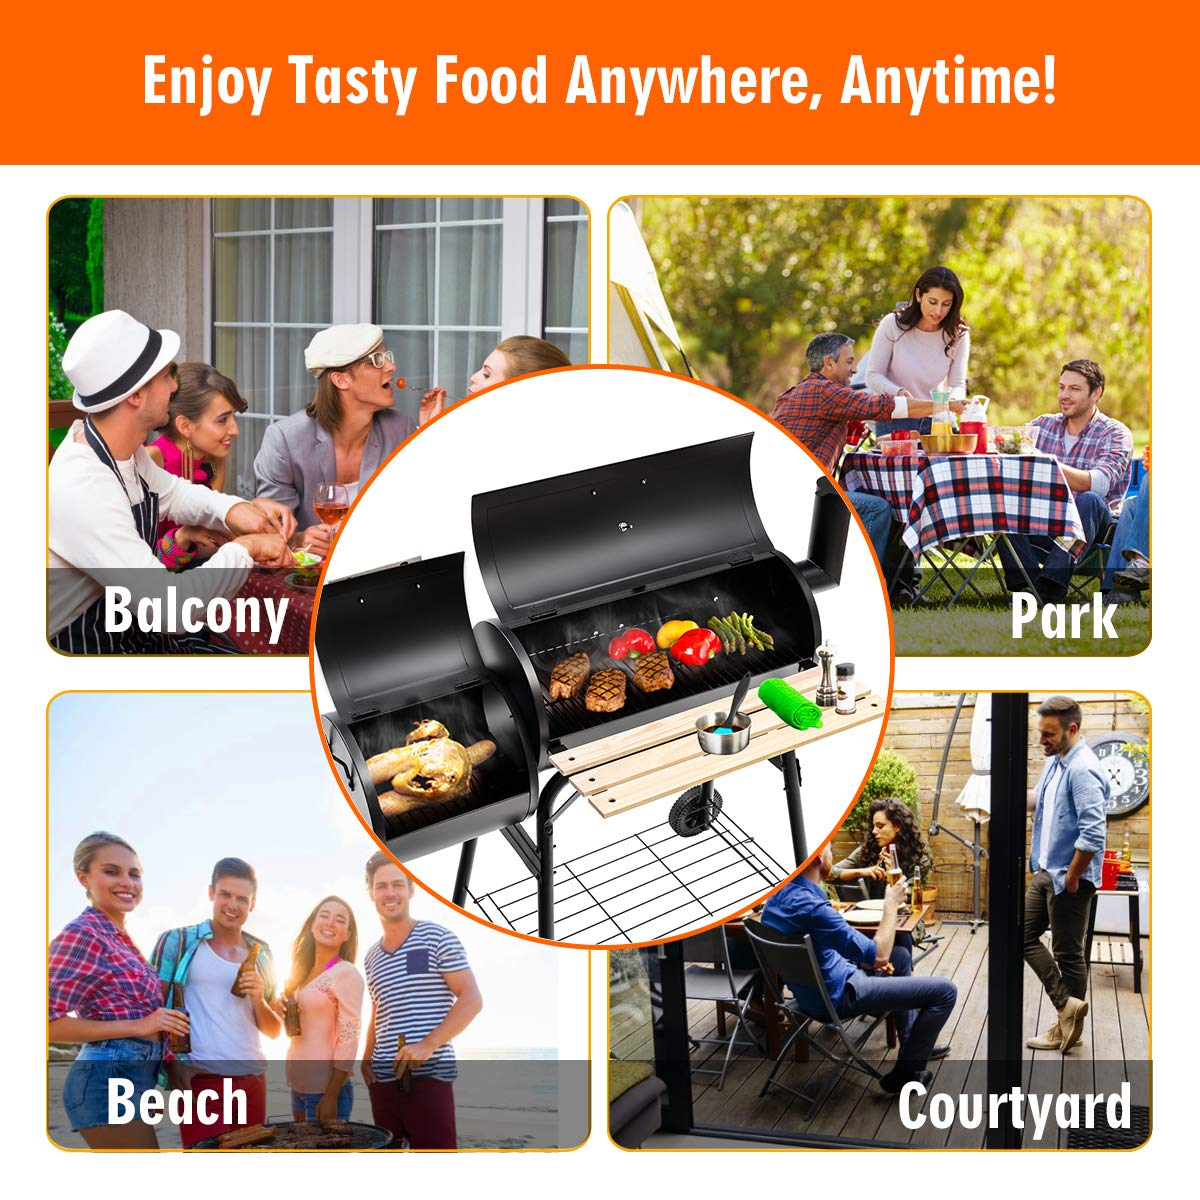 Giantex BBQ Grill Charcoal Barbecue Grill Outdoor Pit Patio Backyard Home Meat Cooker Smoker with Offset Smoker by Giantex (Image #8)